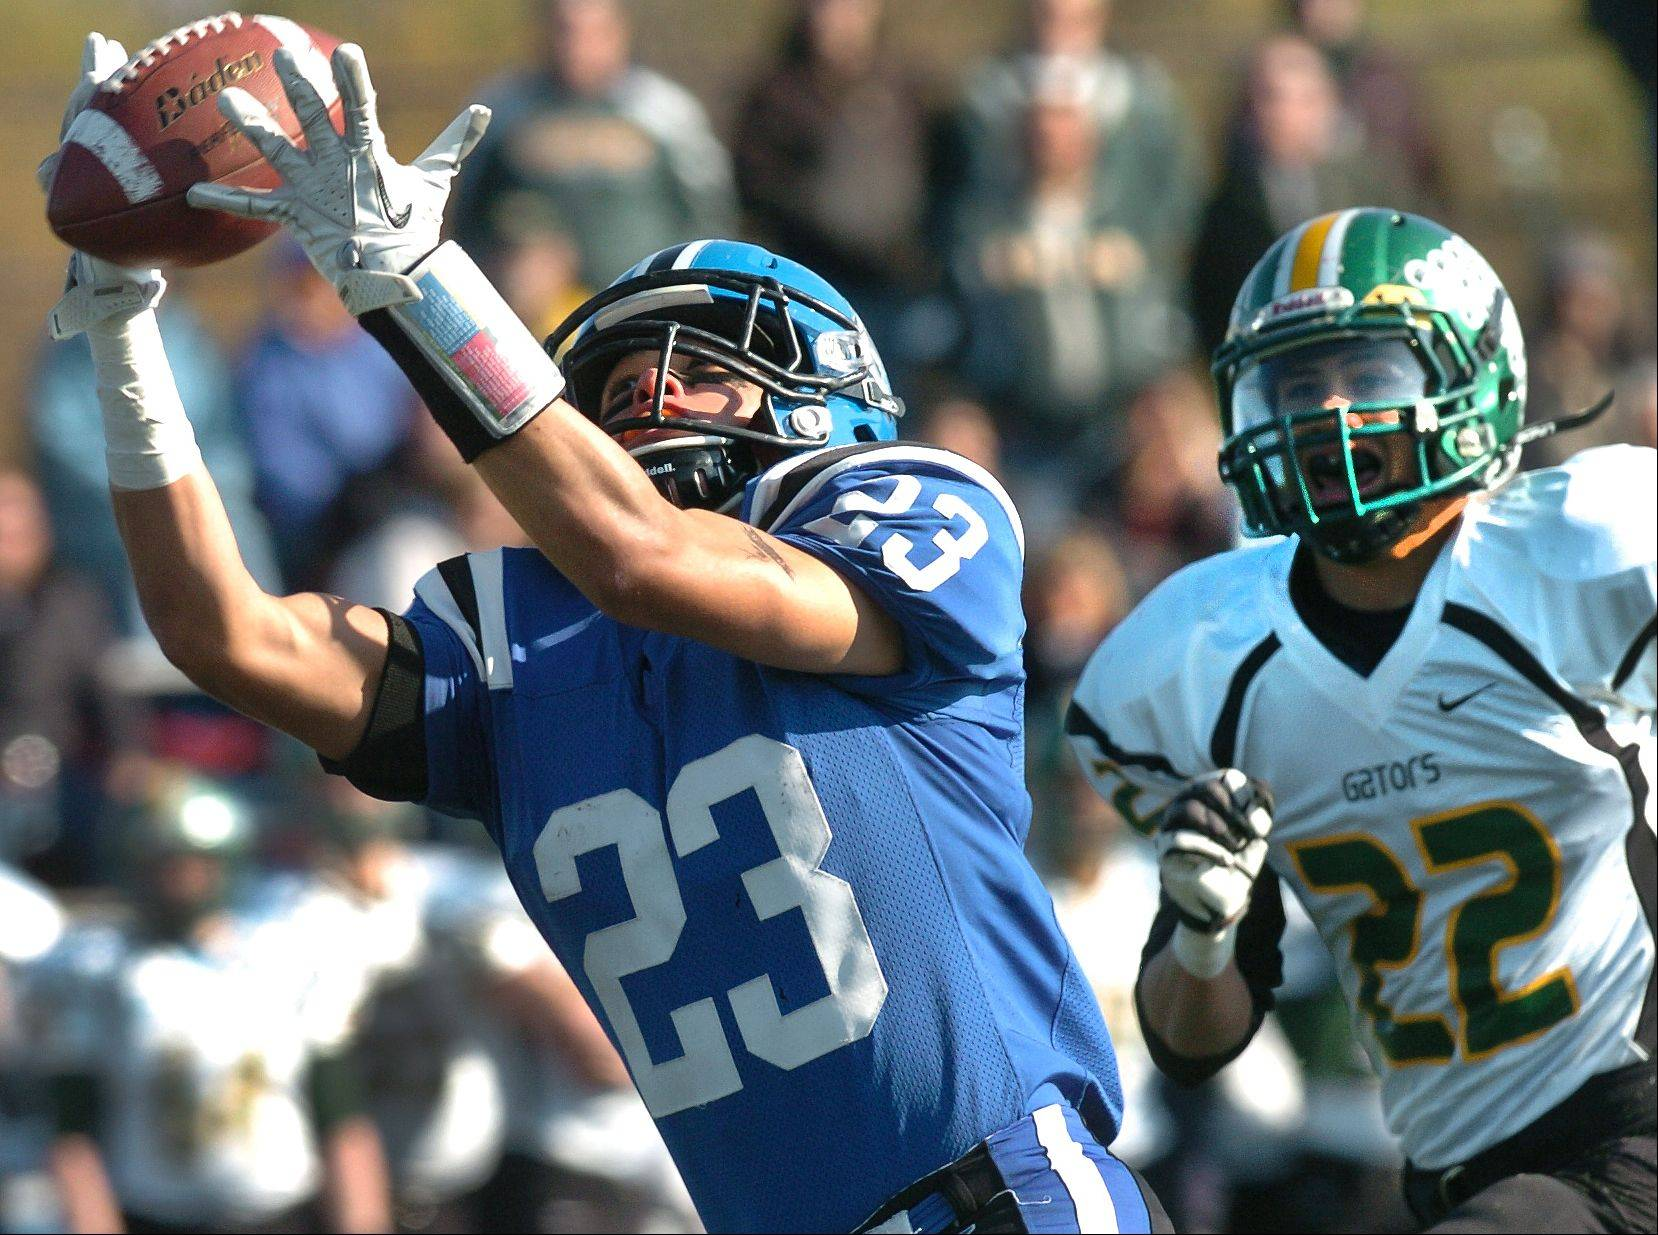 Lake Zurich's Grant Soucy hauls in a 56-yard bomb on the first series of the game, setting up the first touchdown, on their way to routing Crystal Lake South during the Class 7A state playoff opener.